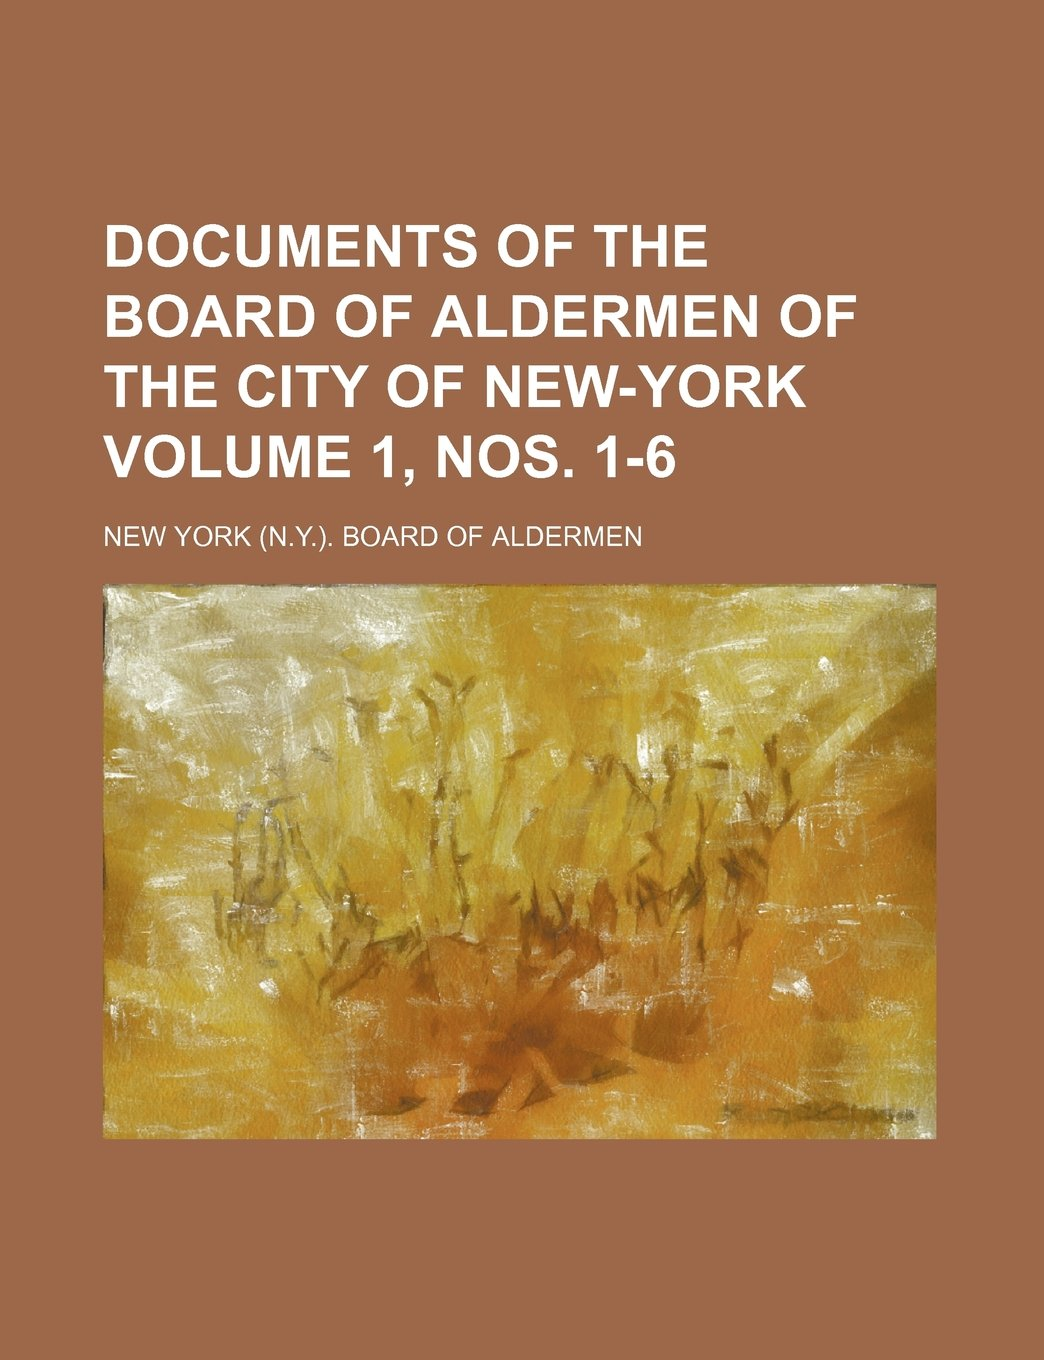 Documents of the Board of Aldermen of the City of New-York Volume 1, nos. 1-6 ebook